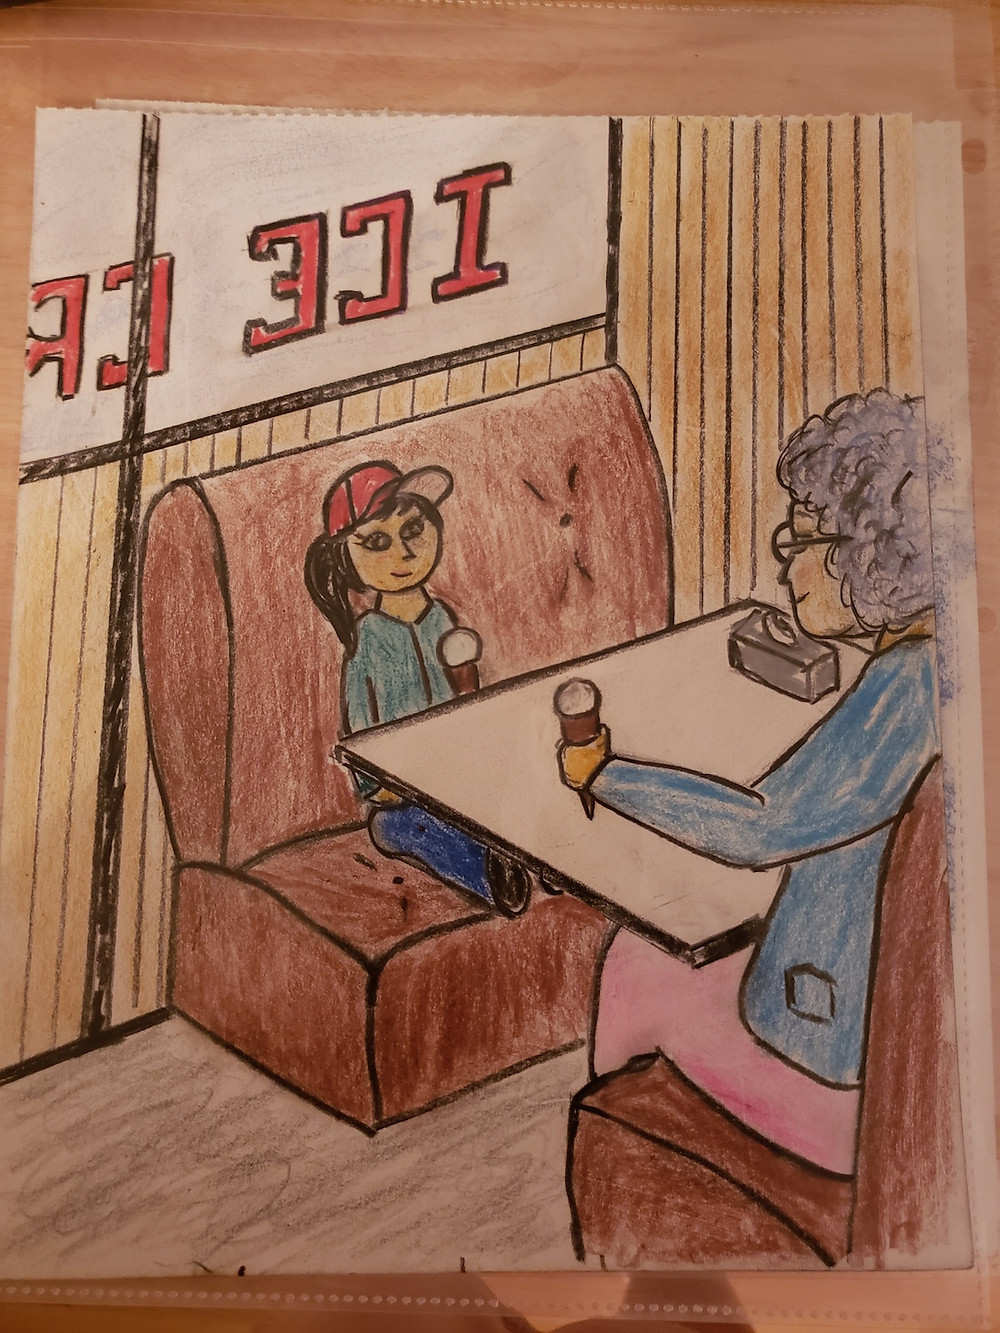 a drawing of a grandmother and granddaughter having ice cream in a restaurant booth.